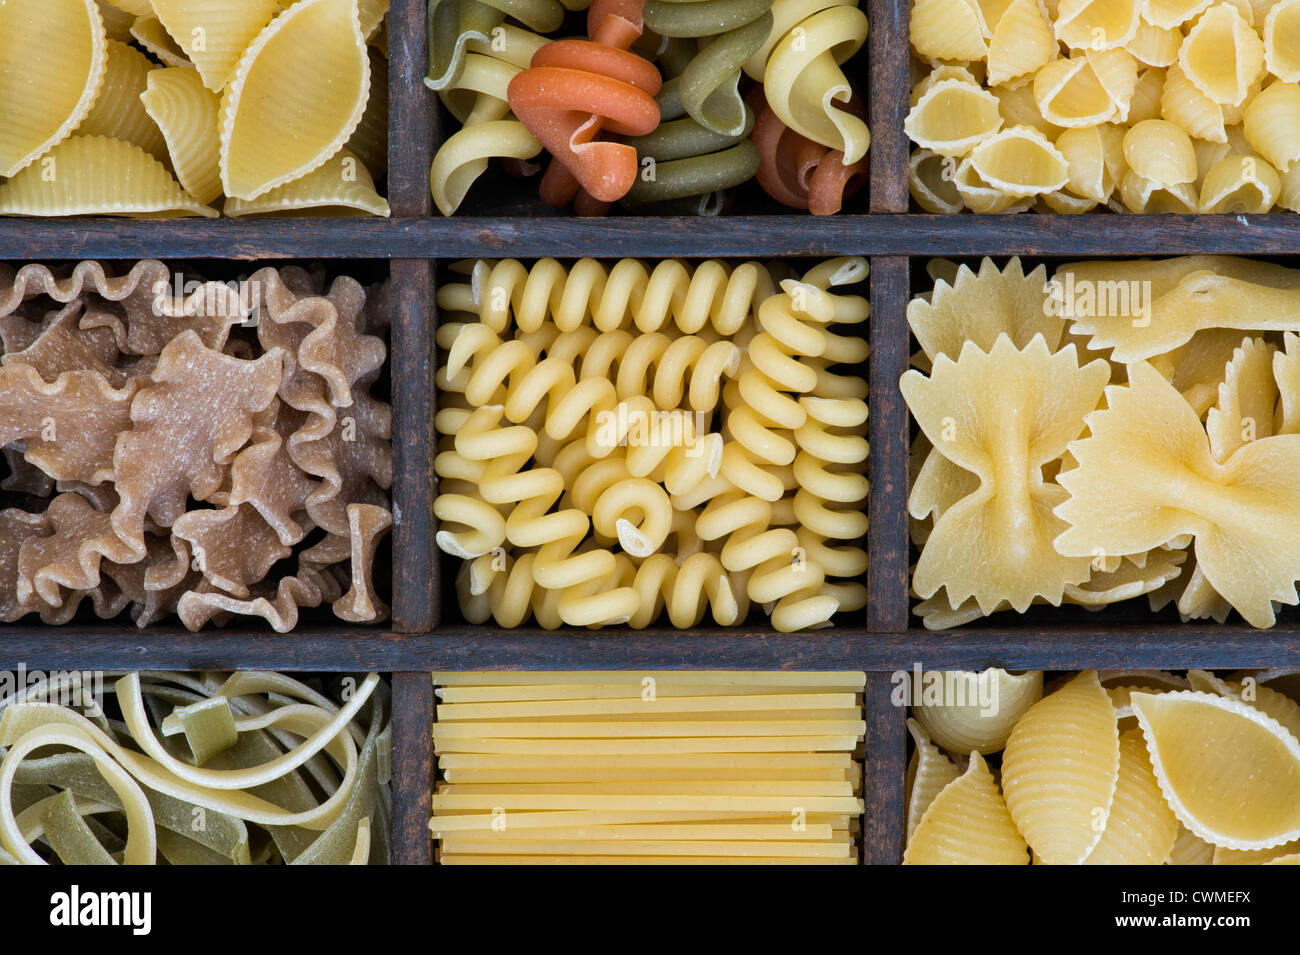 Different types of dried pasta in a wooden tray - Stock Image